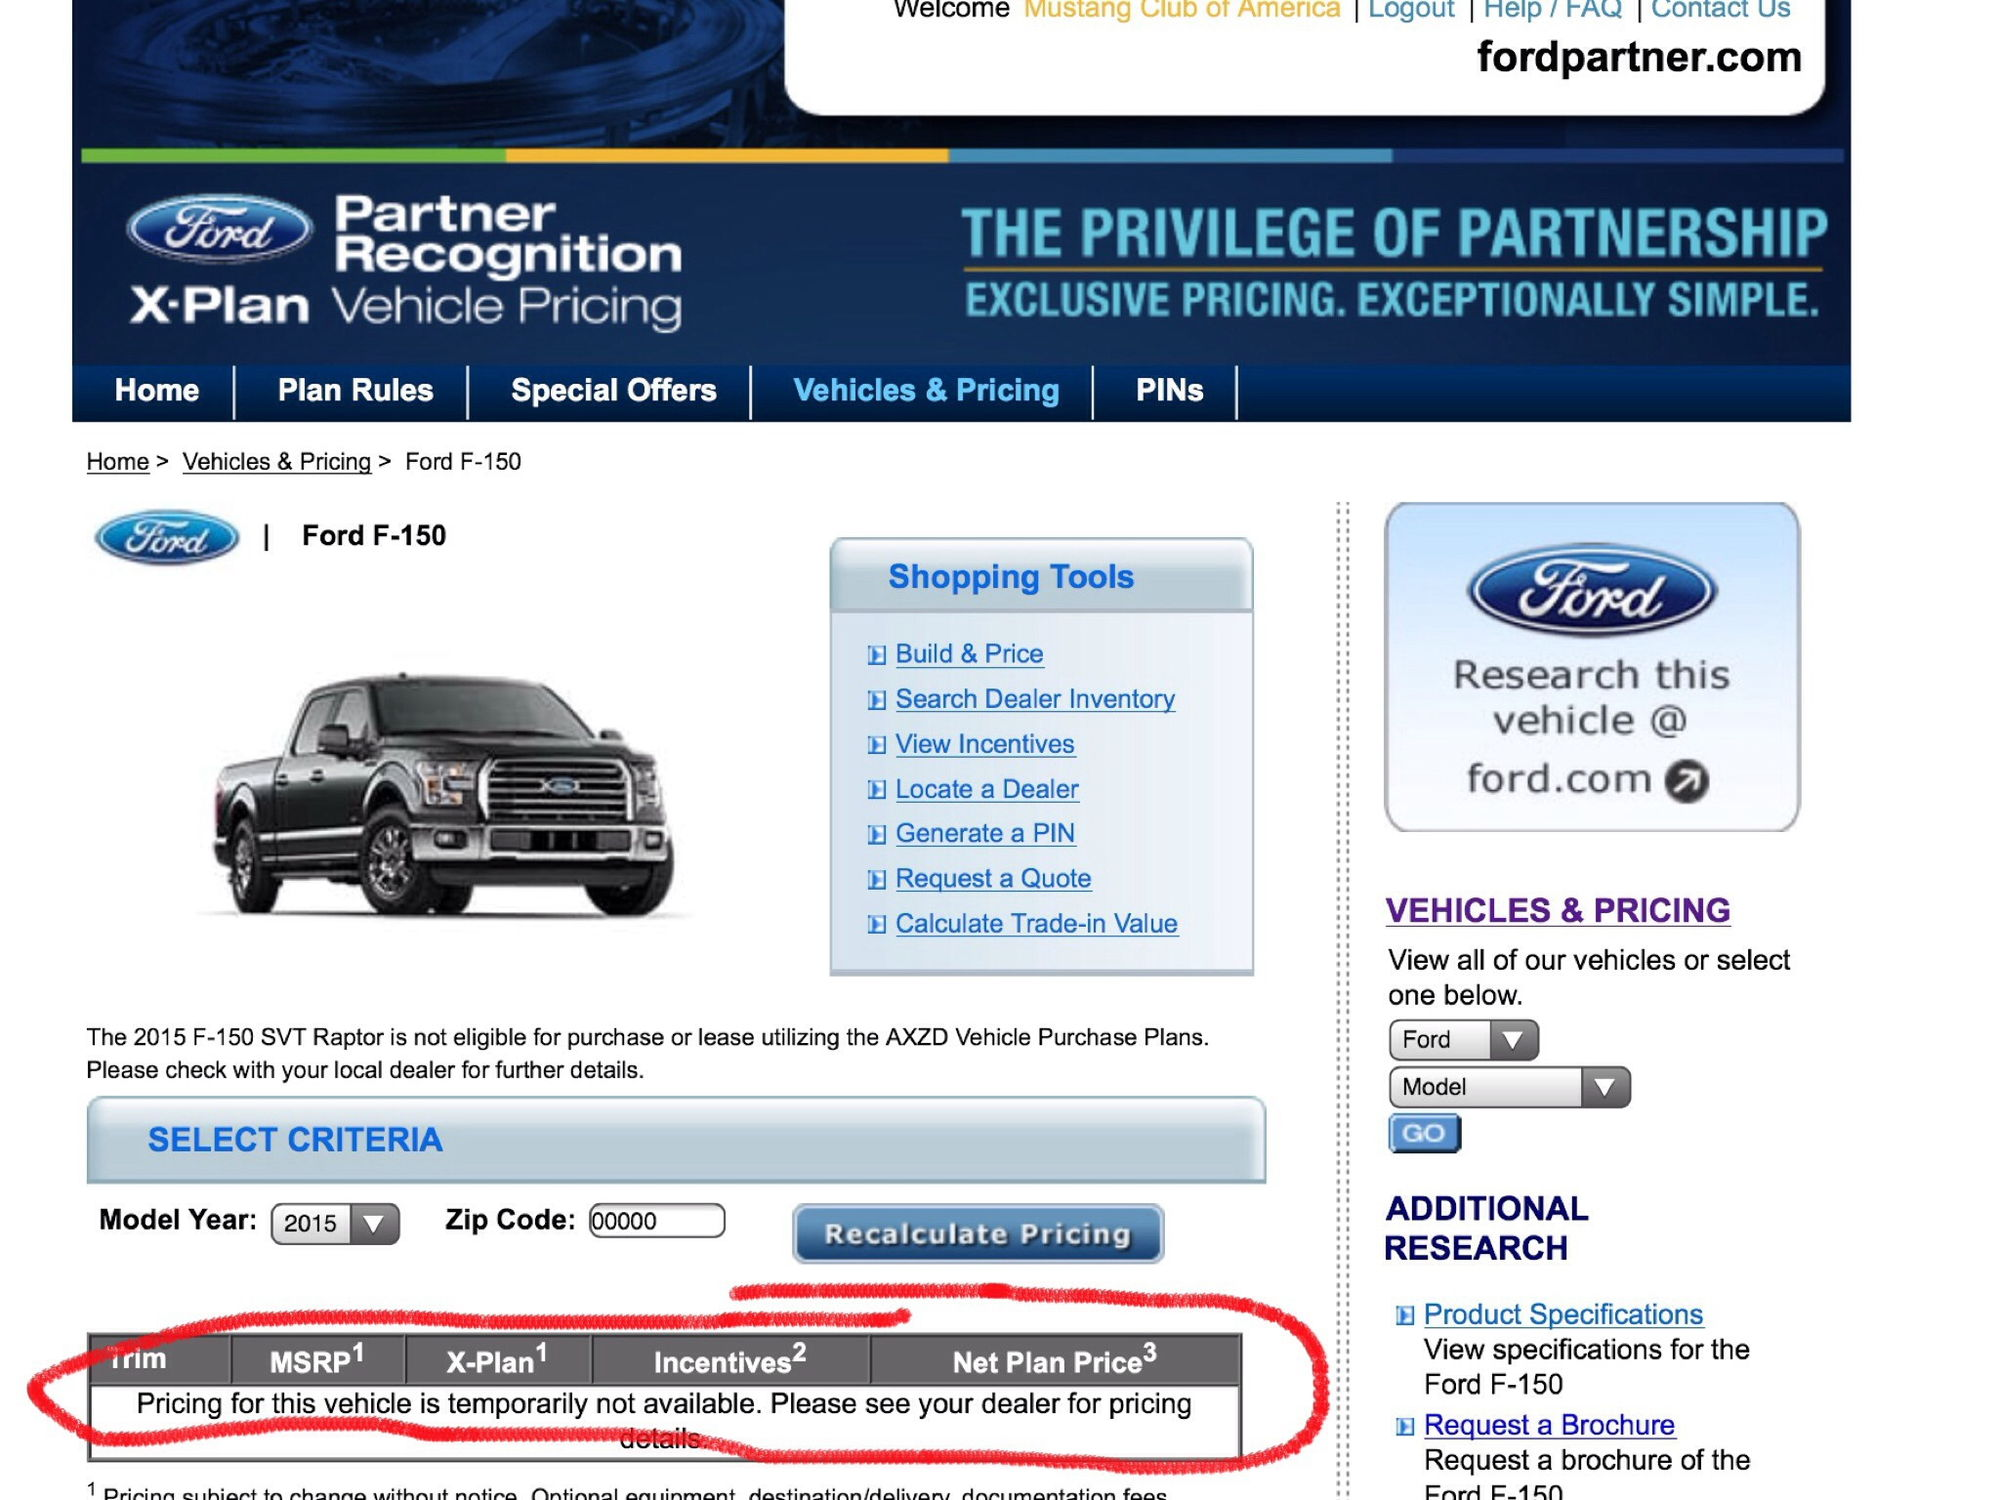 ford partners site not giving me x plan pricing - ford f150 forum